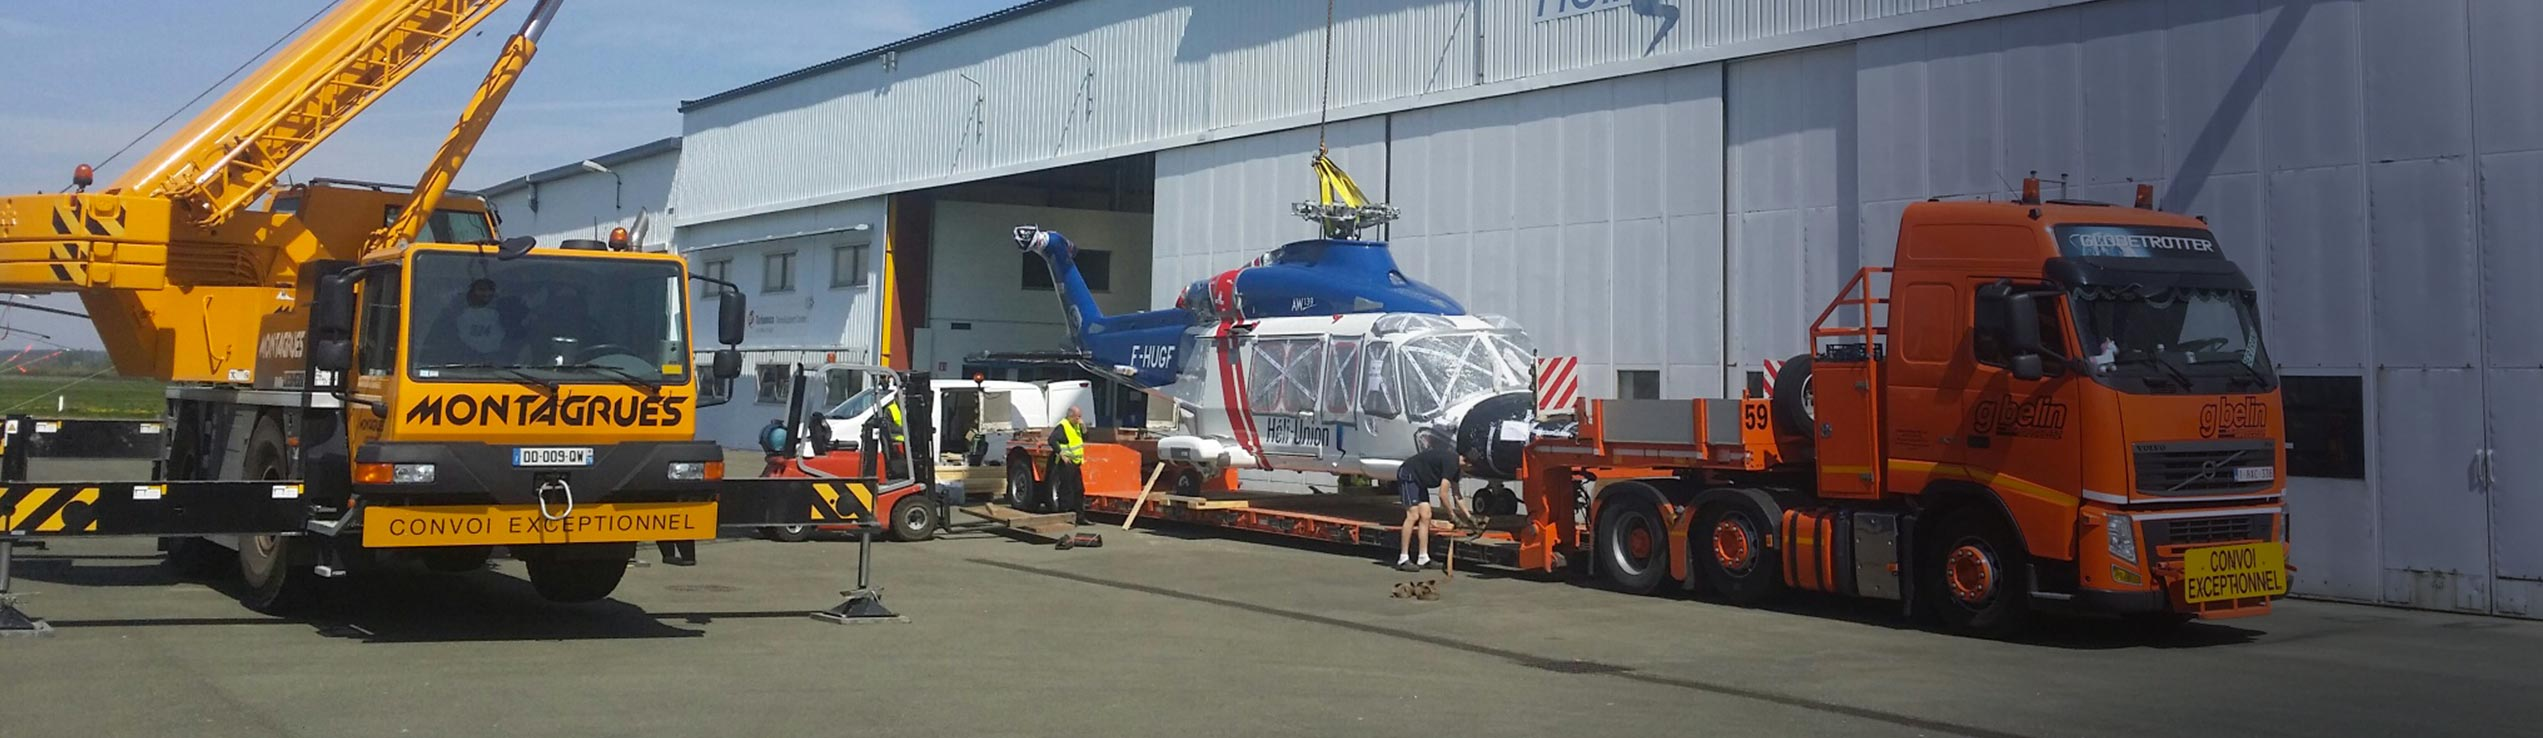 offshore helicopter transport